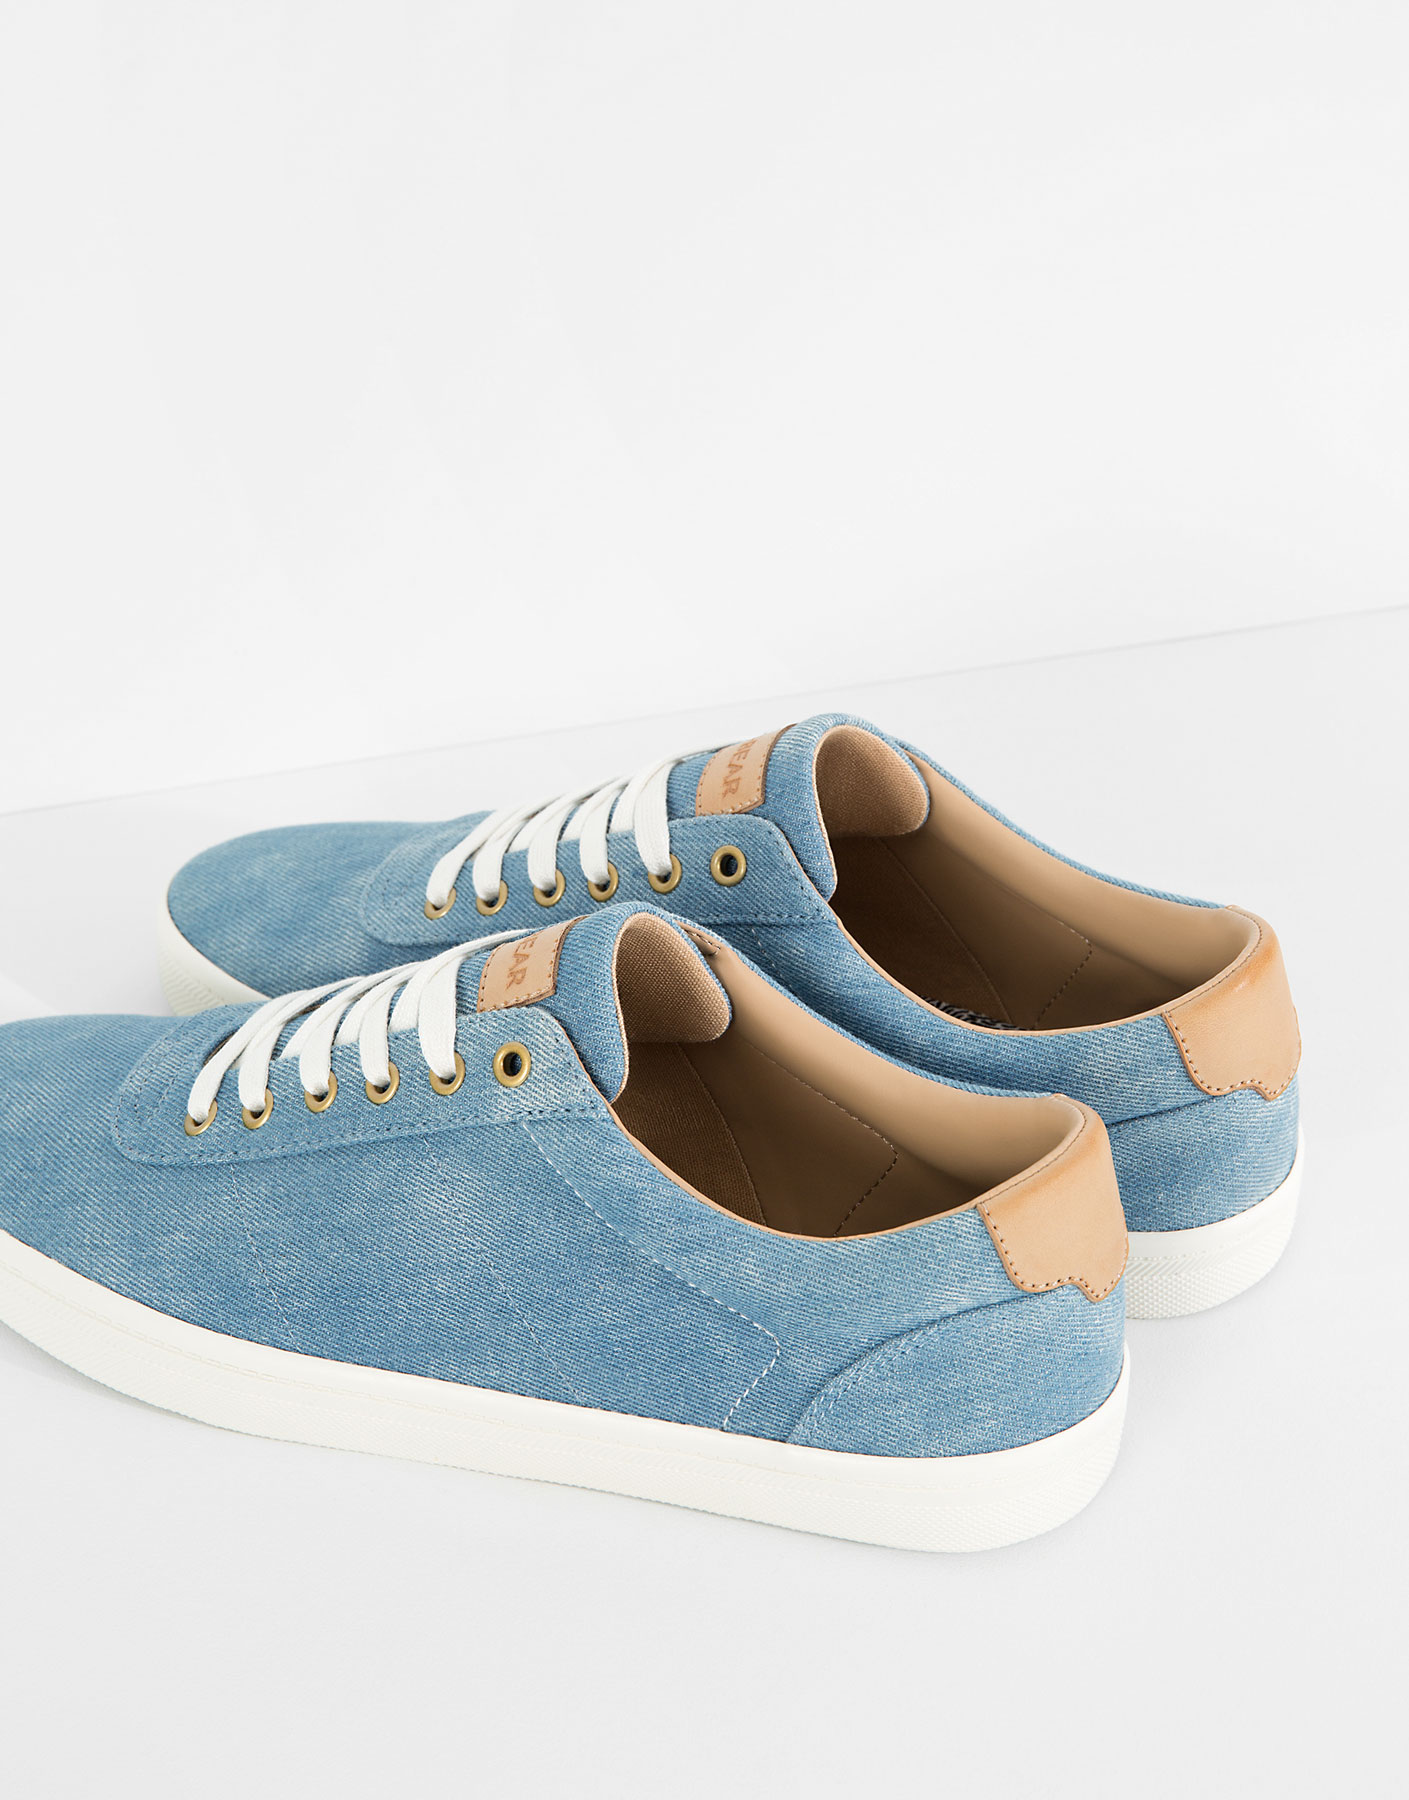 Denim plimsolls